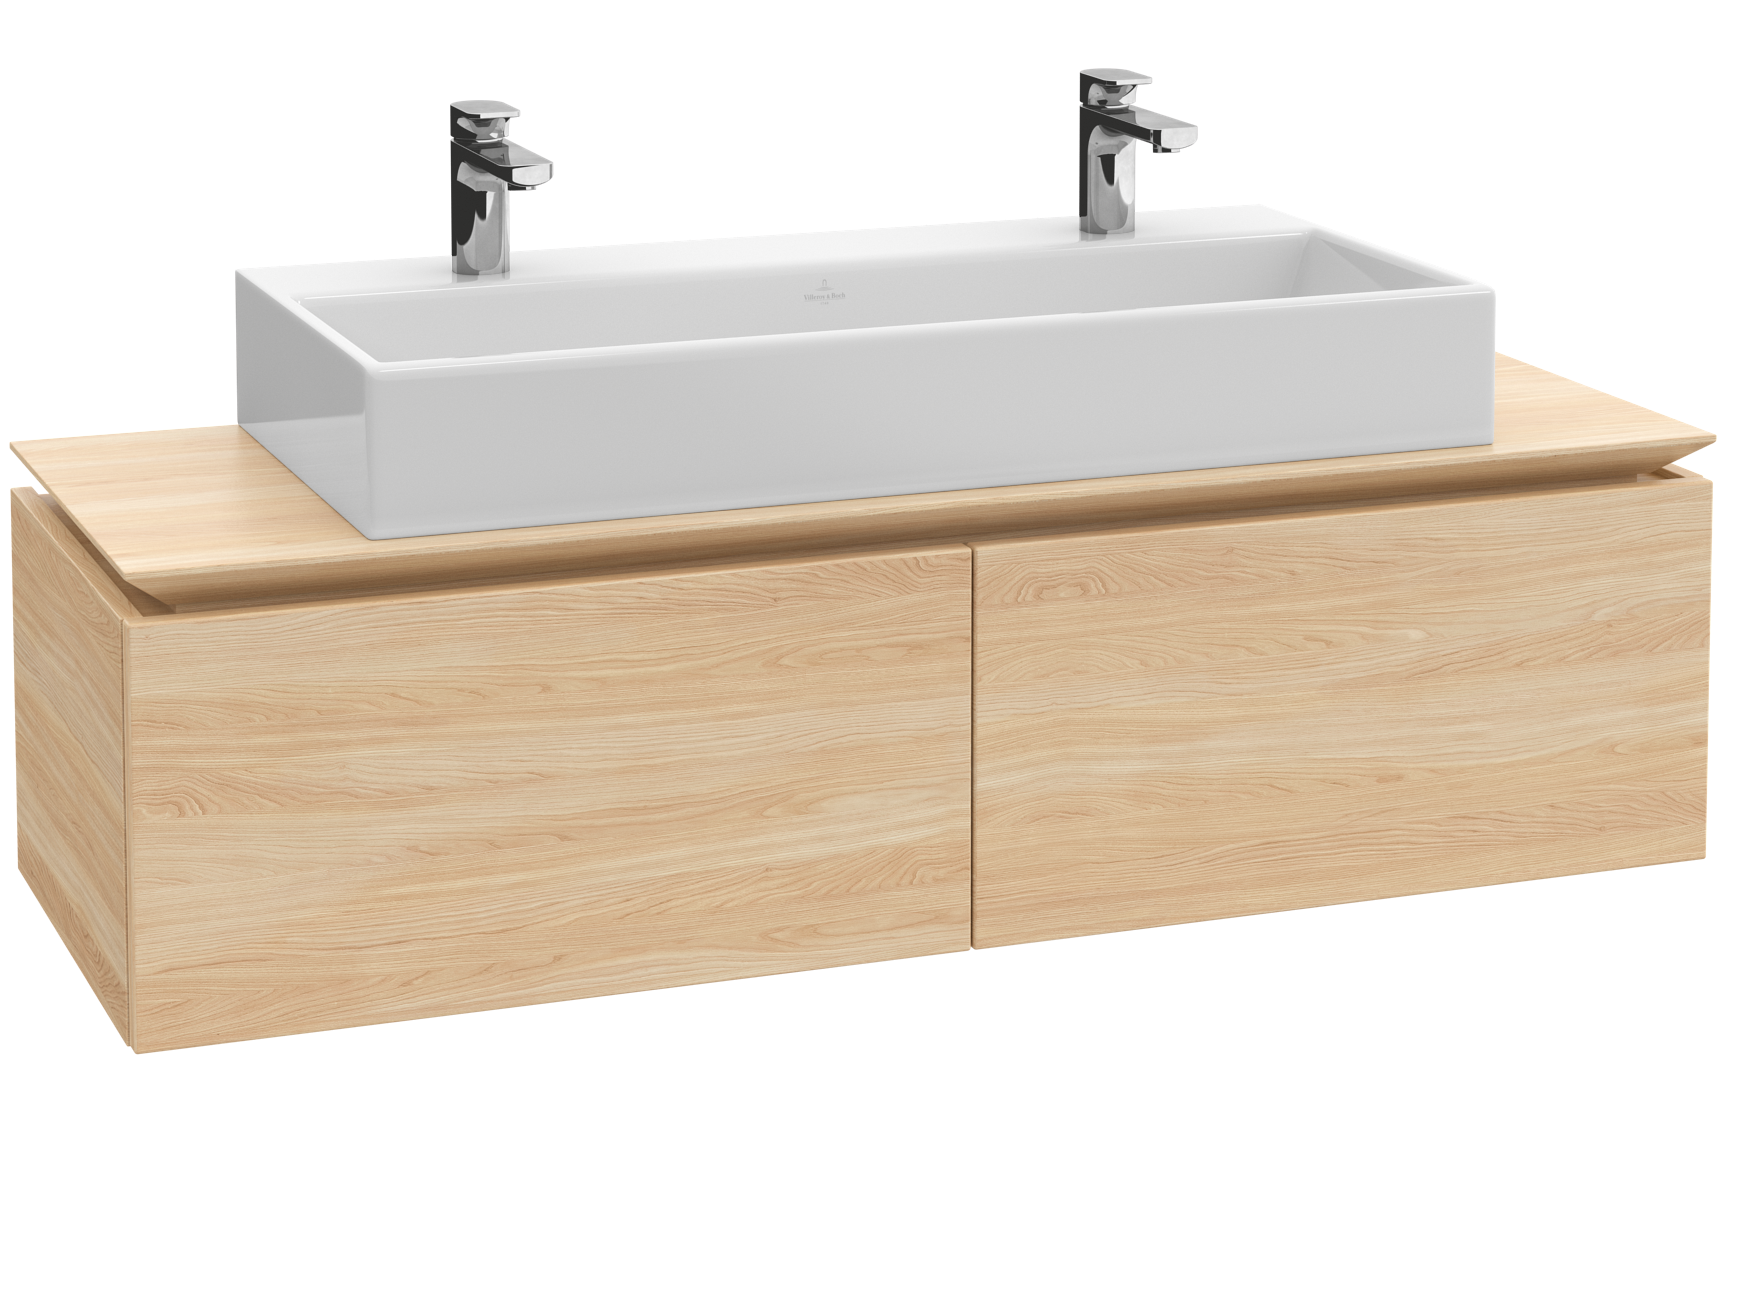 legato bathroom furniture vanity unit for washbasin bathroom sink cabinets